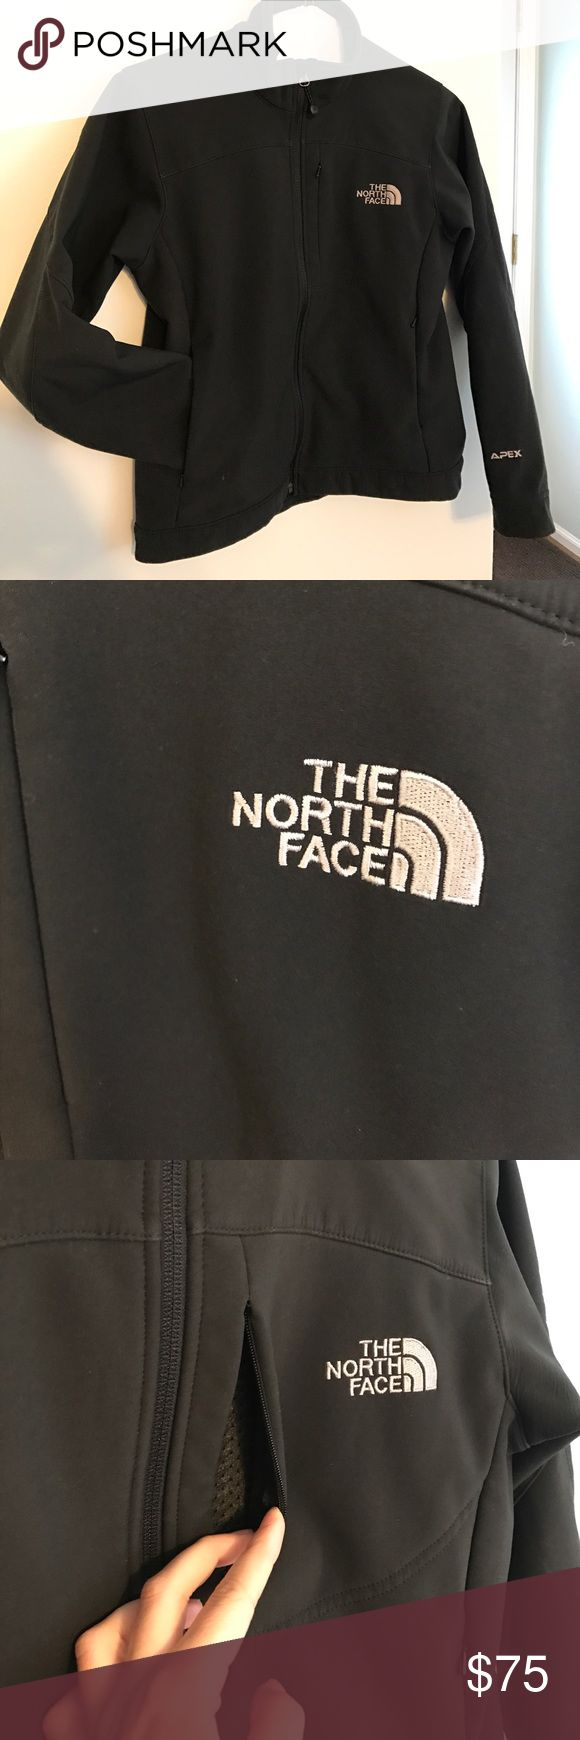 North Face Women's Apex coat Like new! True to size. Front and back North Face logo. 2 pockets and 1 chest pocket. Inside is fully lined. North Face Jackets & Coats